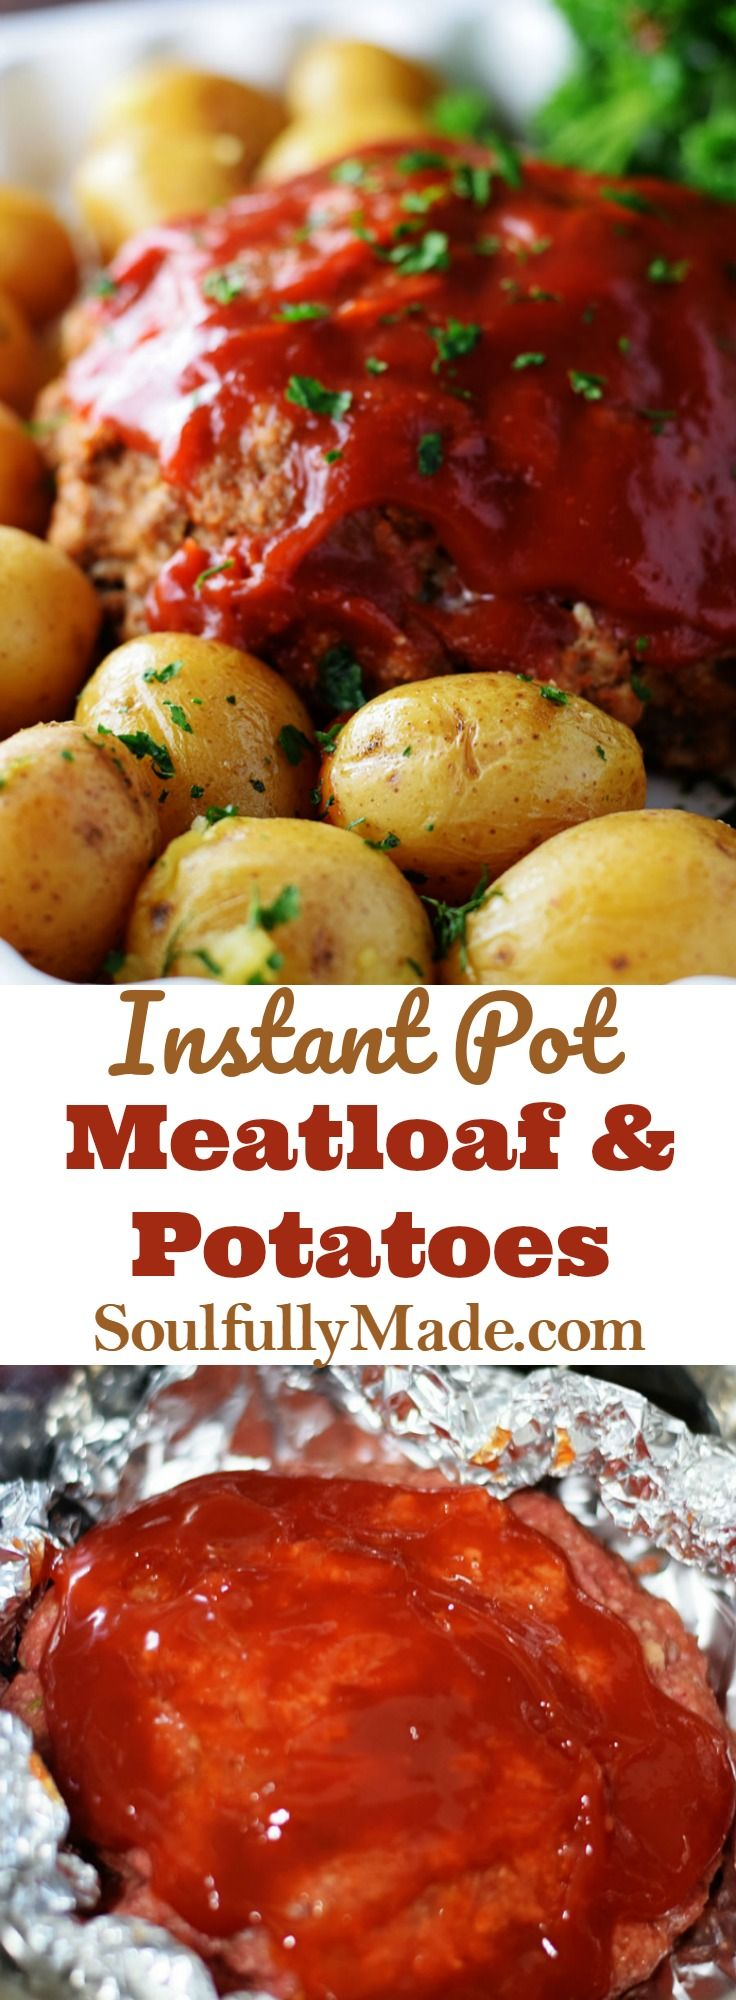 Soulfully Made Instant Pot Meatloaf And Potatoes In A Complete Comfort Meal Just Like Easy Instant Pot Recipes Instant Pot Dinner Recipes Instant Pot Recipes